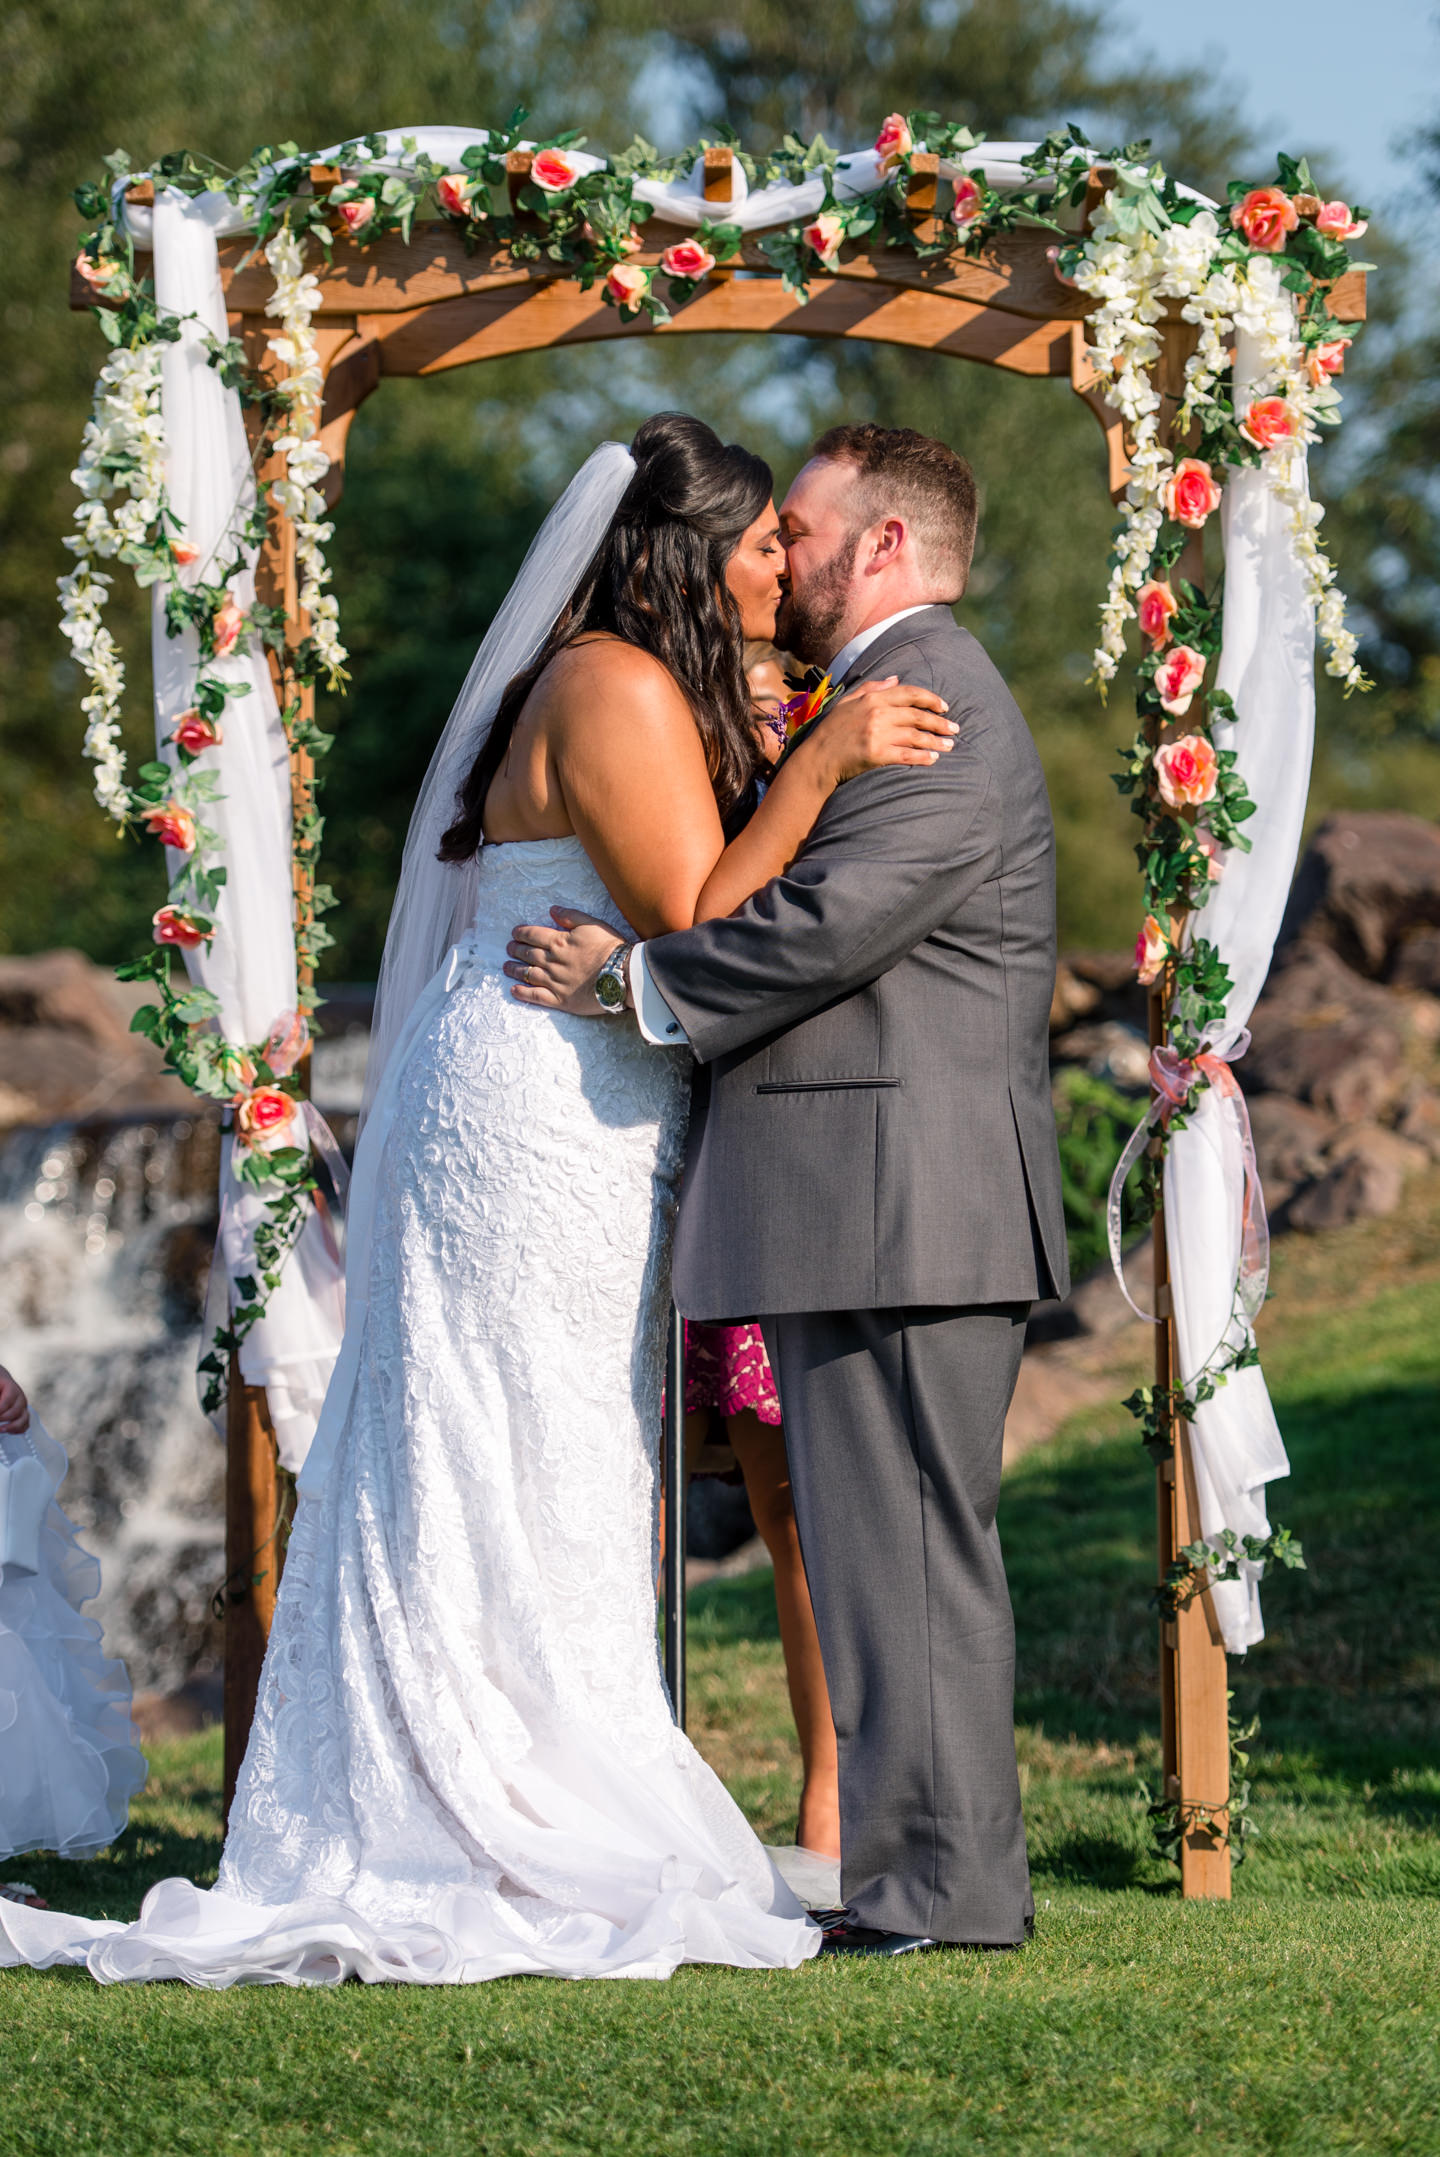 Indian Bride and Groom Kiss during Wedding Ceremony